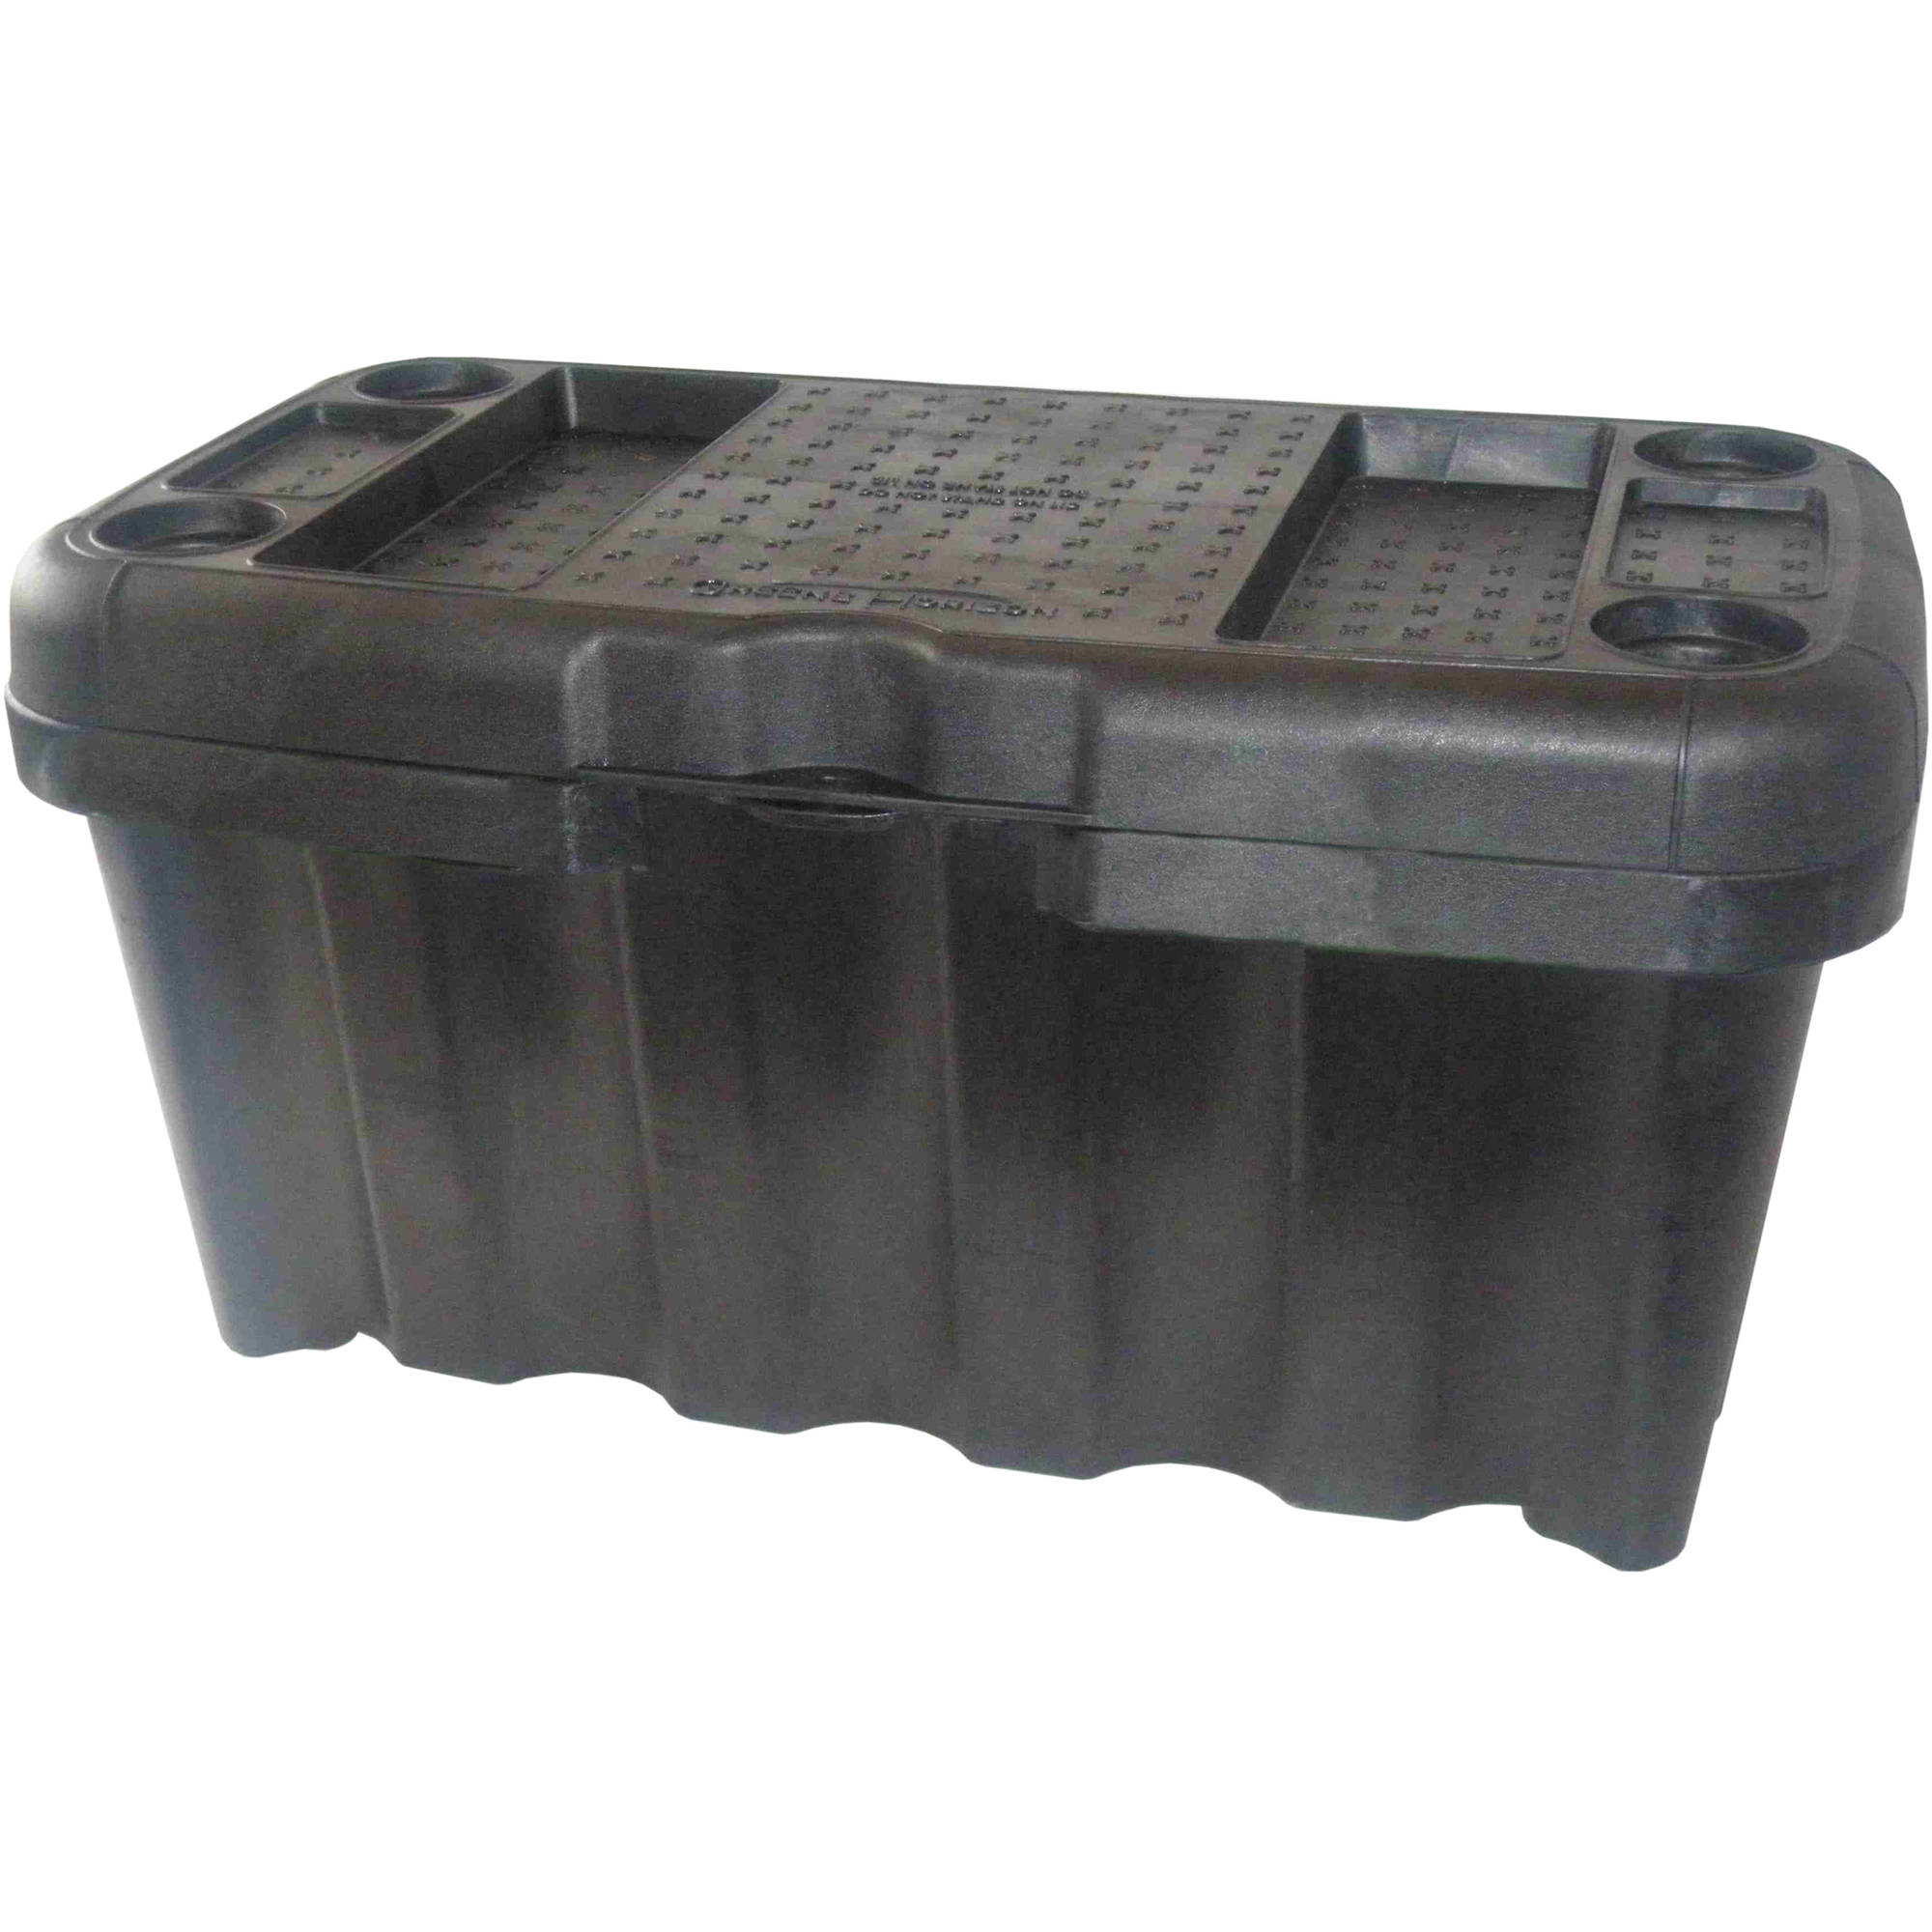 PowerPacker 45-Gallon Truck Box/Cargo Bin